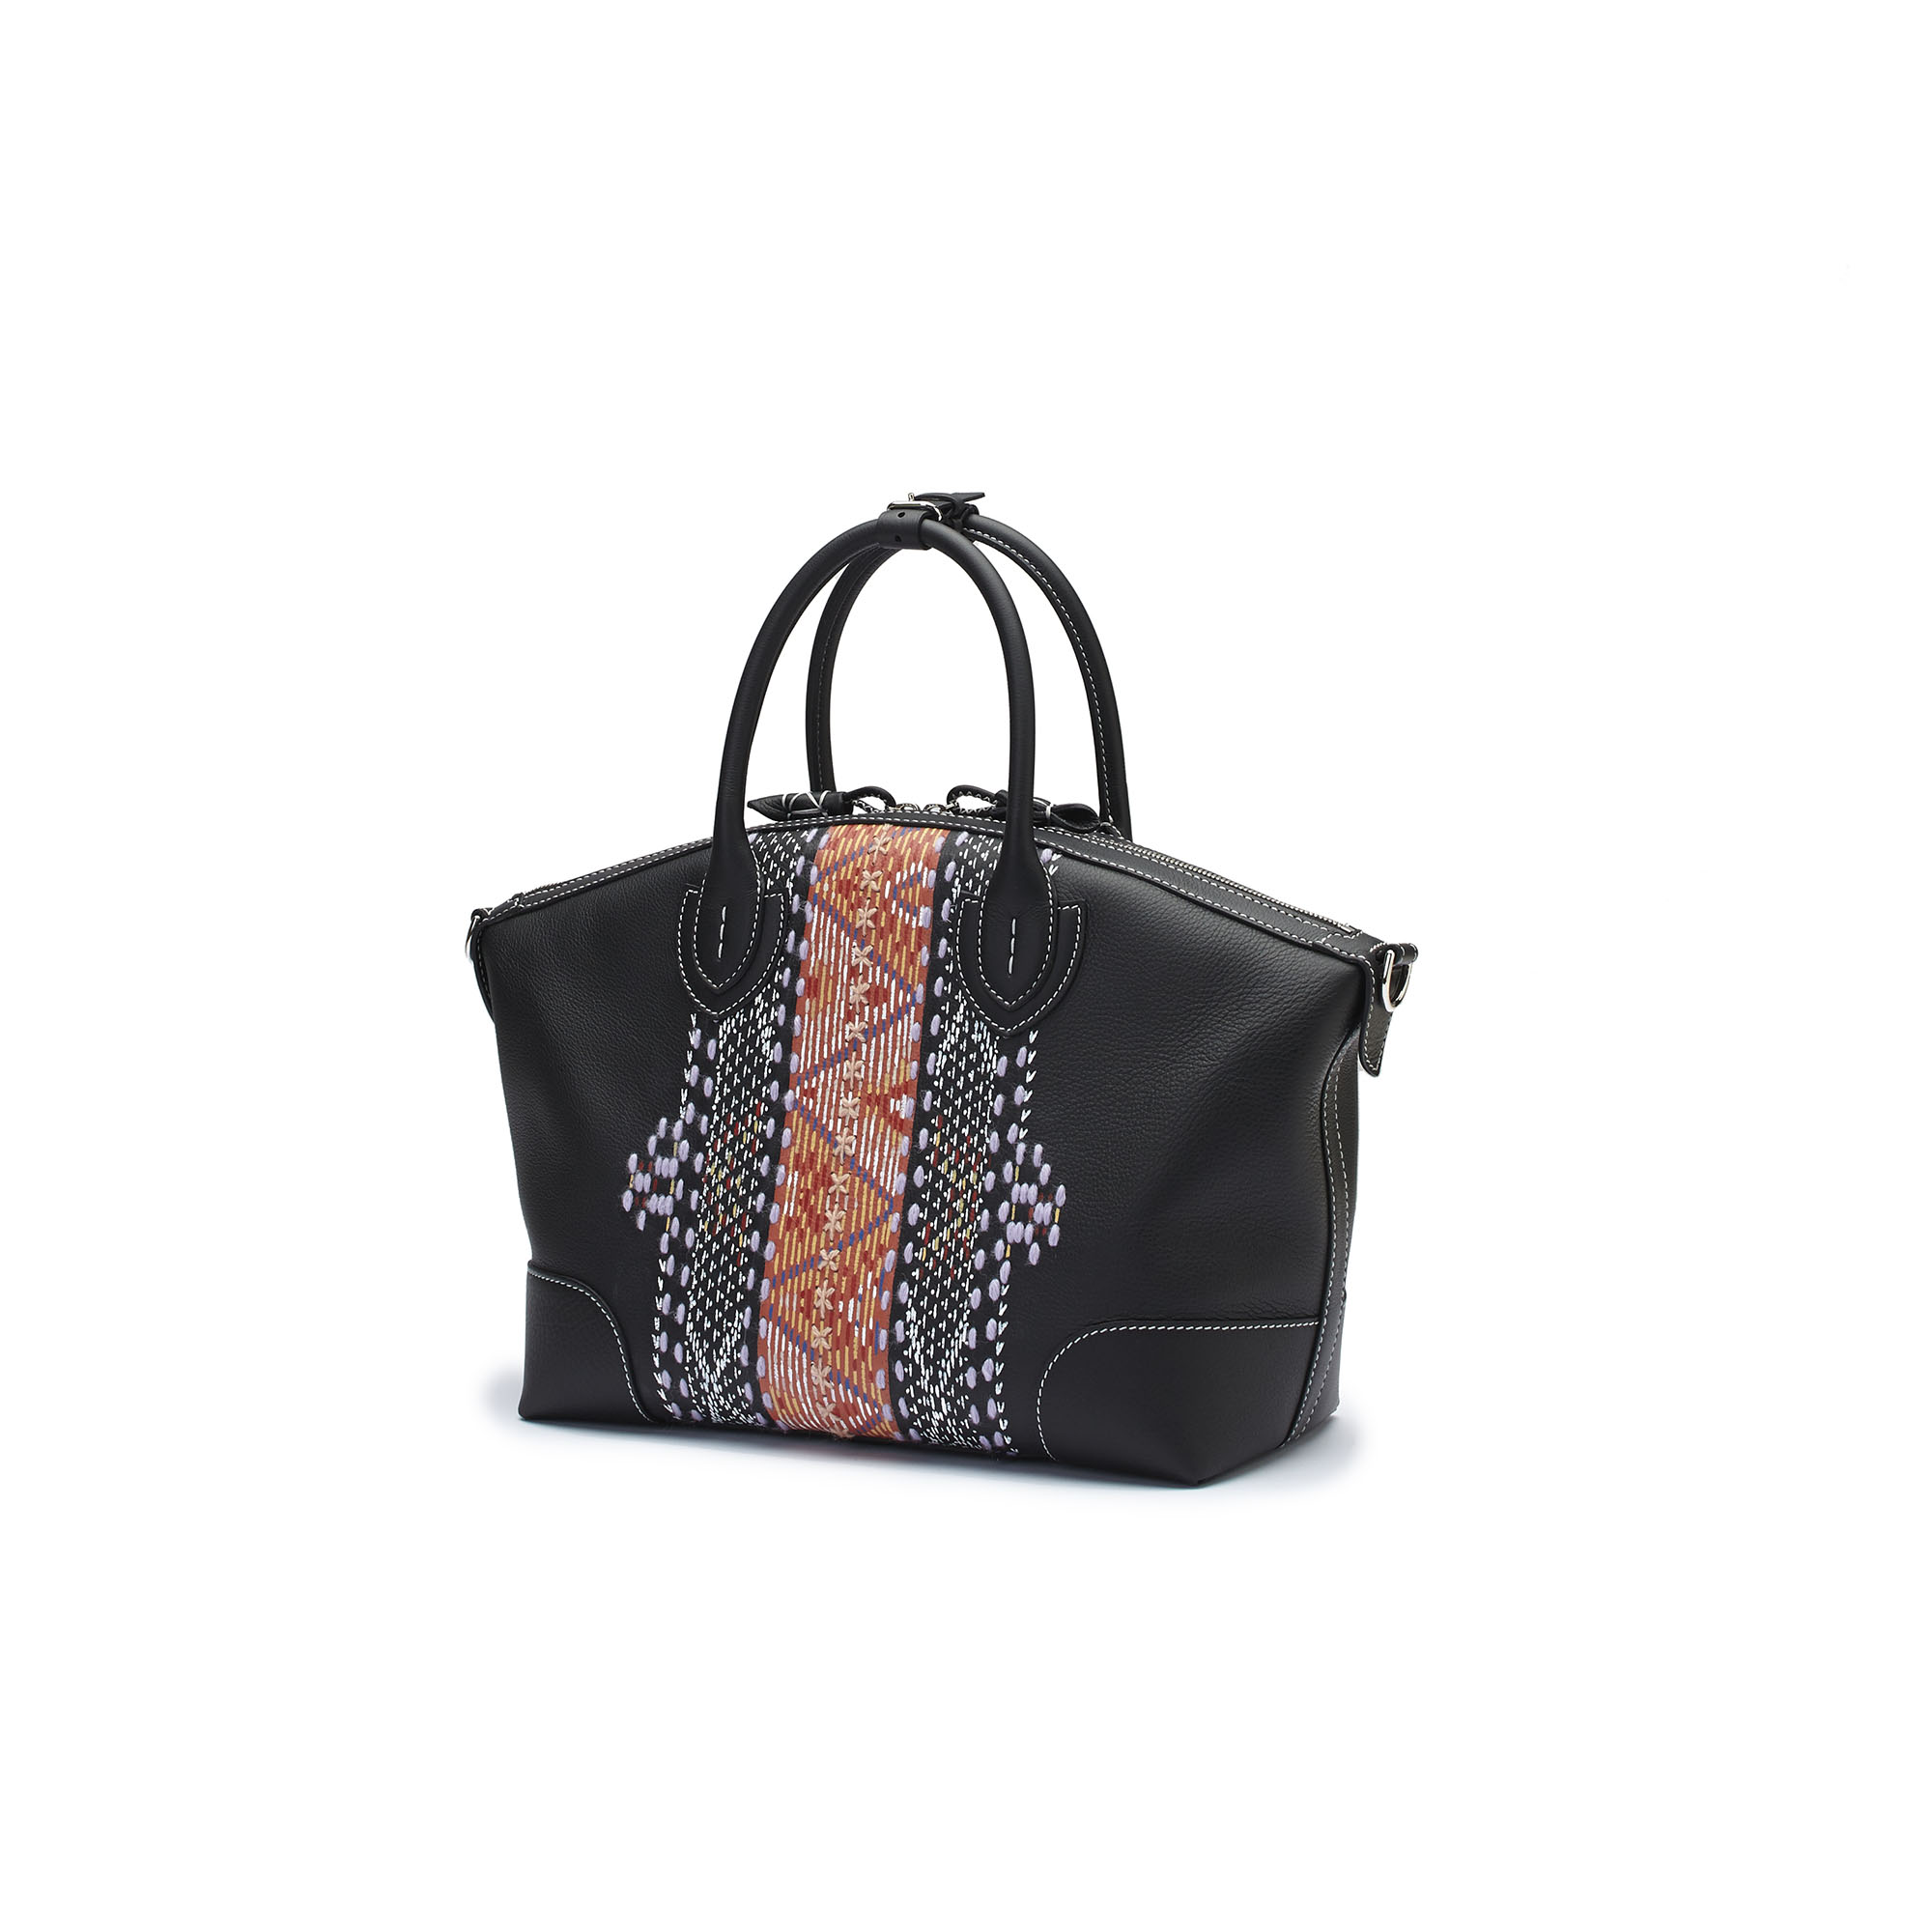 The black embroidered hand painted soft calf Anija bag by Bertoni 1949 02